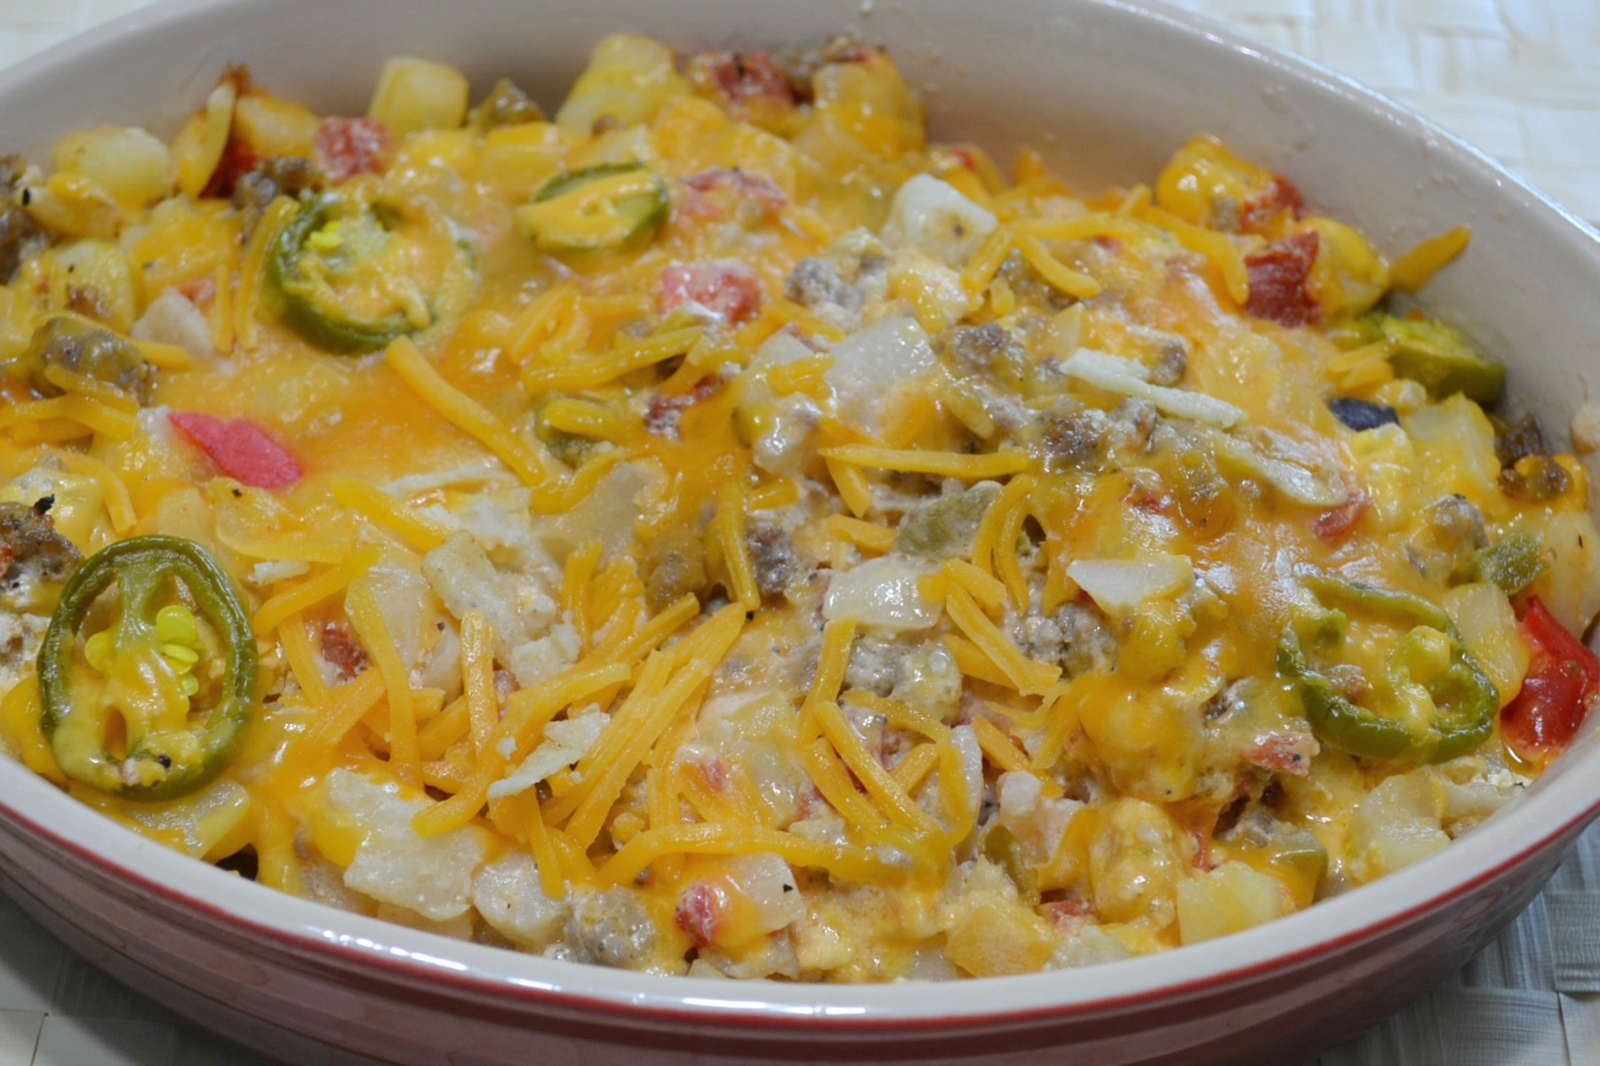 Hash brown casserole recipes with some added ingredients to make delicious variations